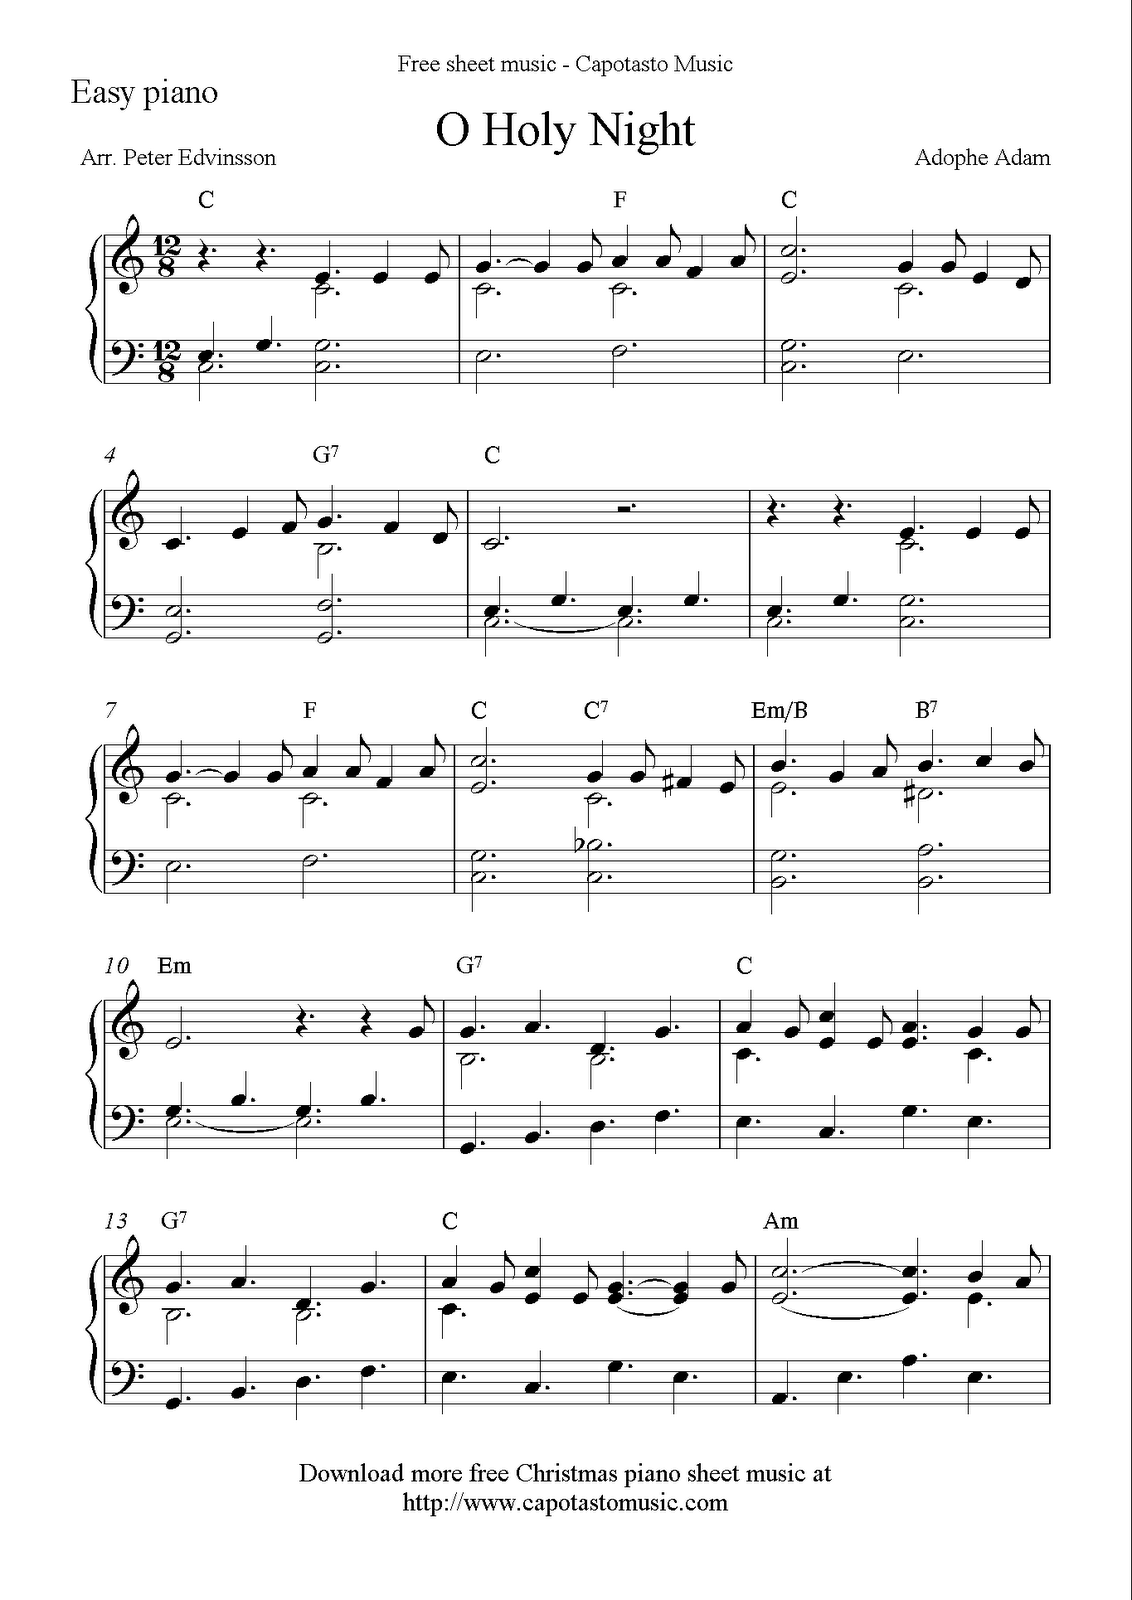 photograph about Free Printable Christmas Sheet Music for Piano named Totally free Sheet New music Rankings: Absolutely free straightforward Xmas piano sheet